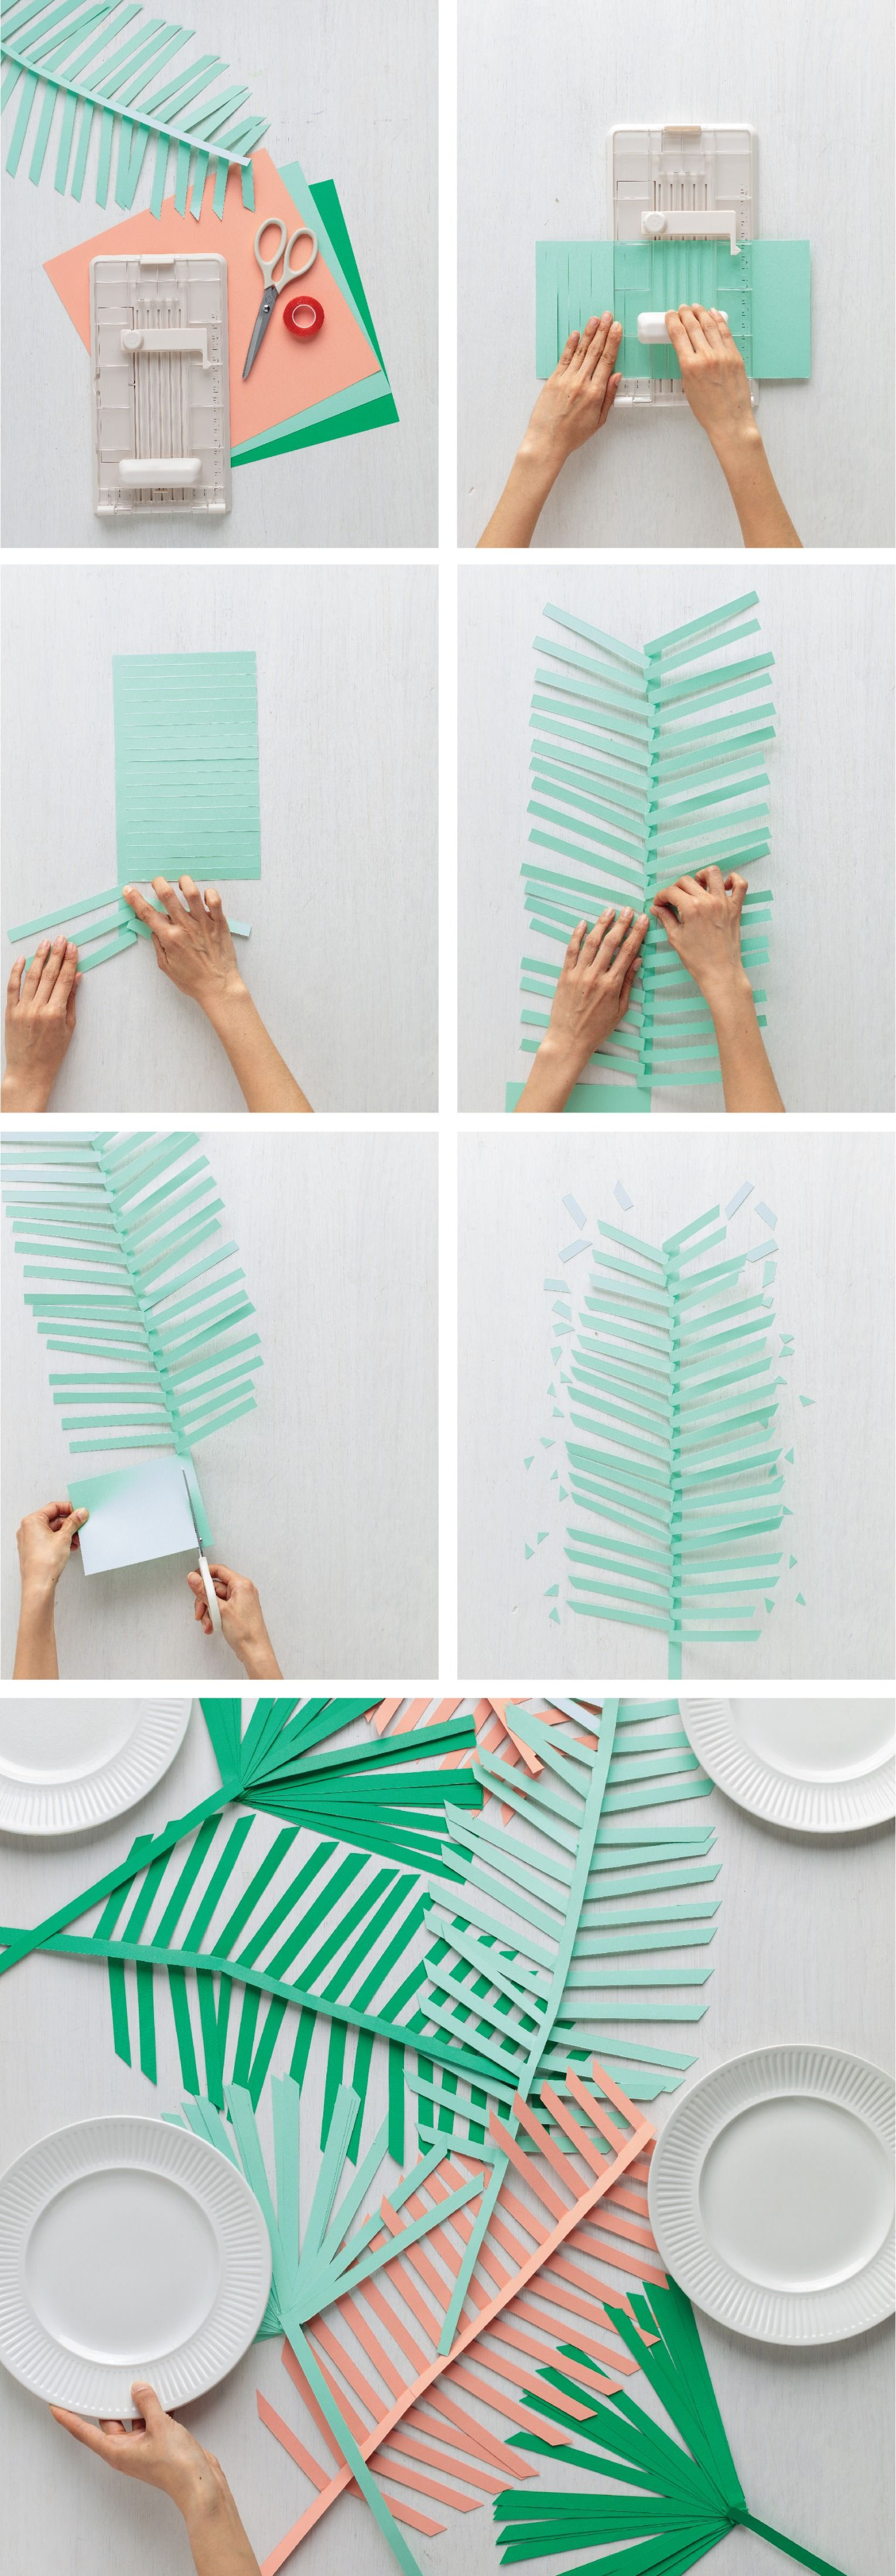 Check out our new way to fringe a diy paper palm leaf runner from check out our new way to fringe a diy paper palm leaf runner from jeuxipadfo Choice Image